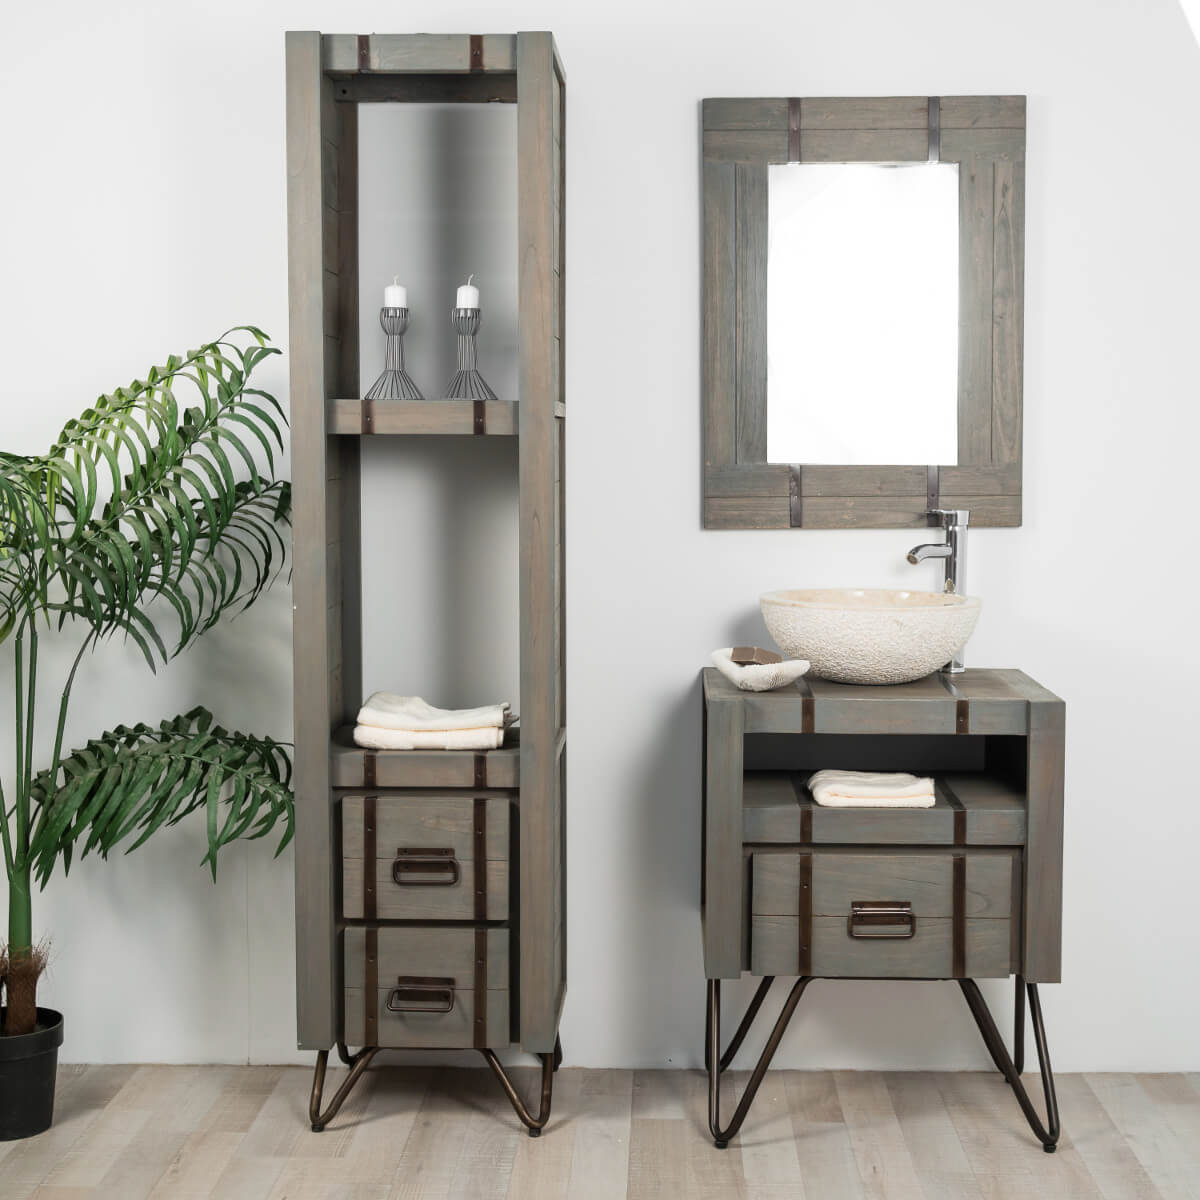 meuble de salle de bain loft en mindi et m tal 60 cm gris. Black Bedroom Furniture Sets. Home Design Ideas